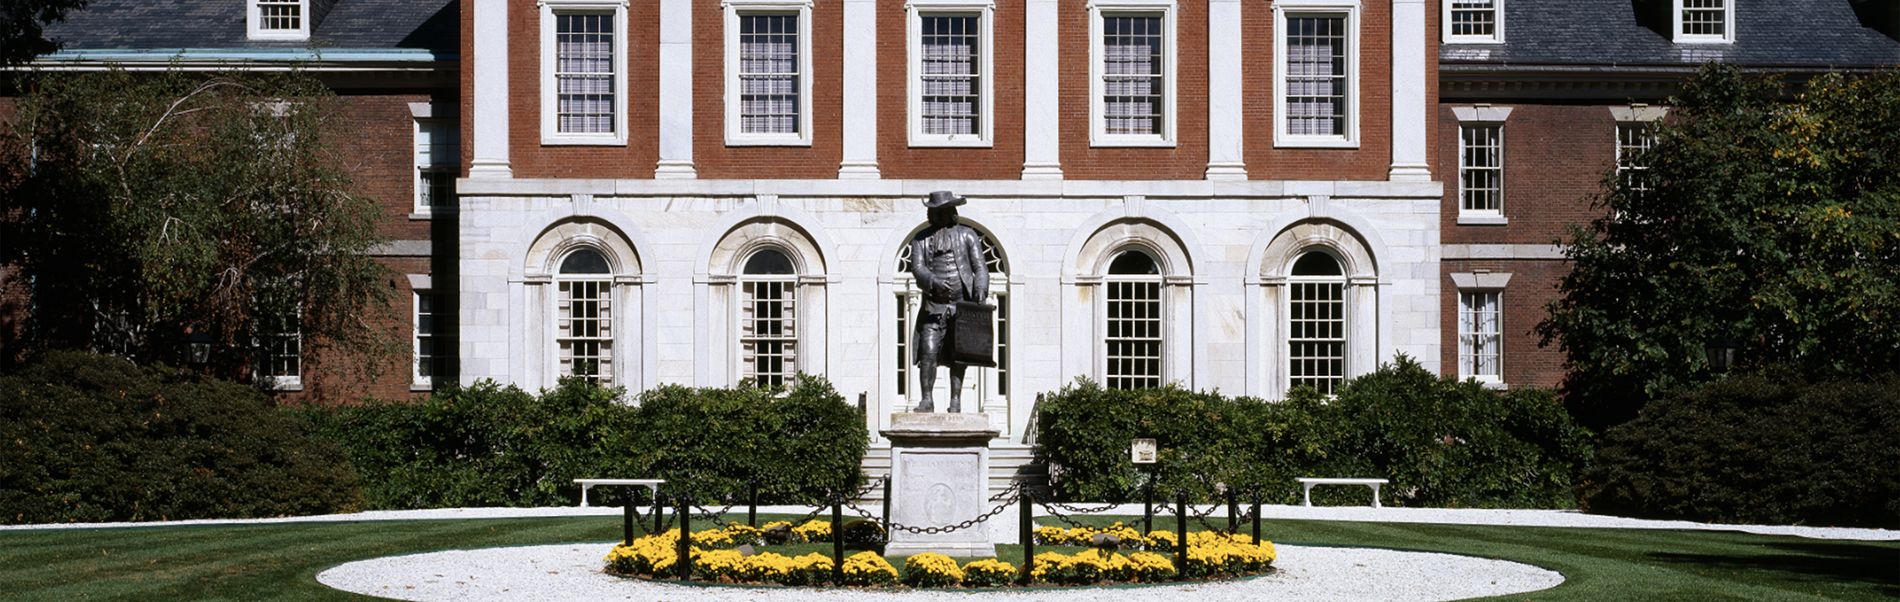 Facade of Pennsylvania Hospital with statue of Benjamin Franklin in foreground